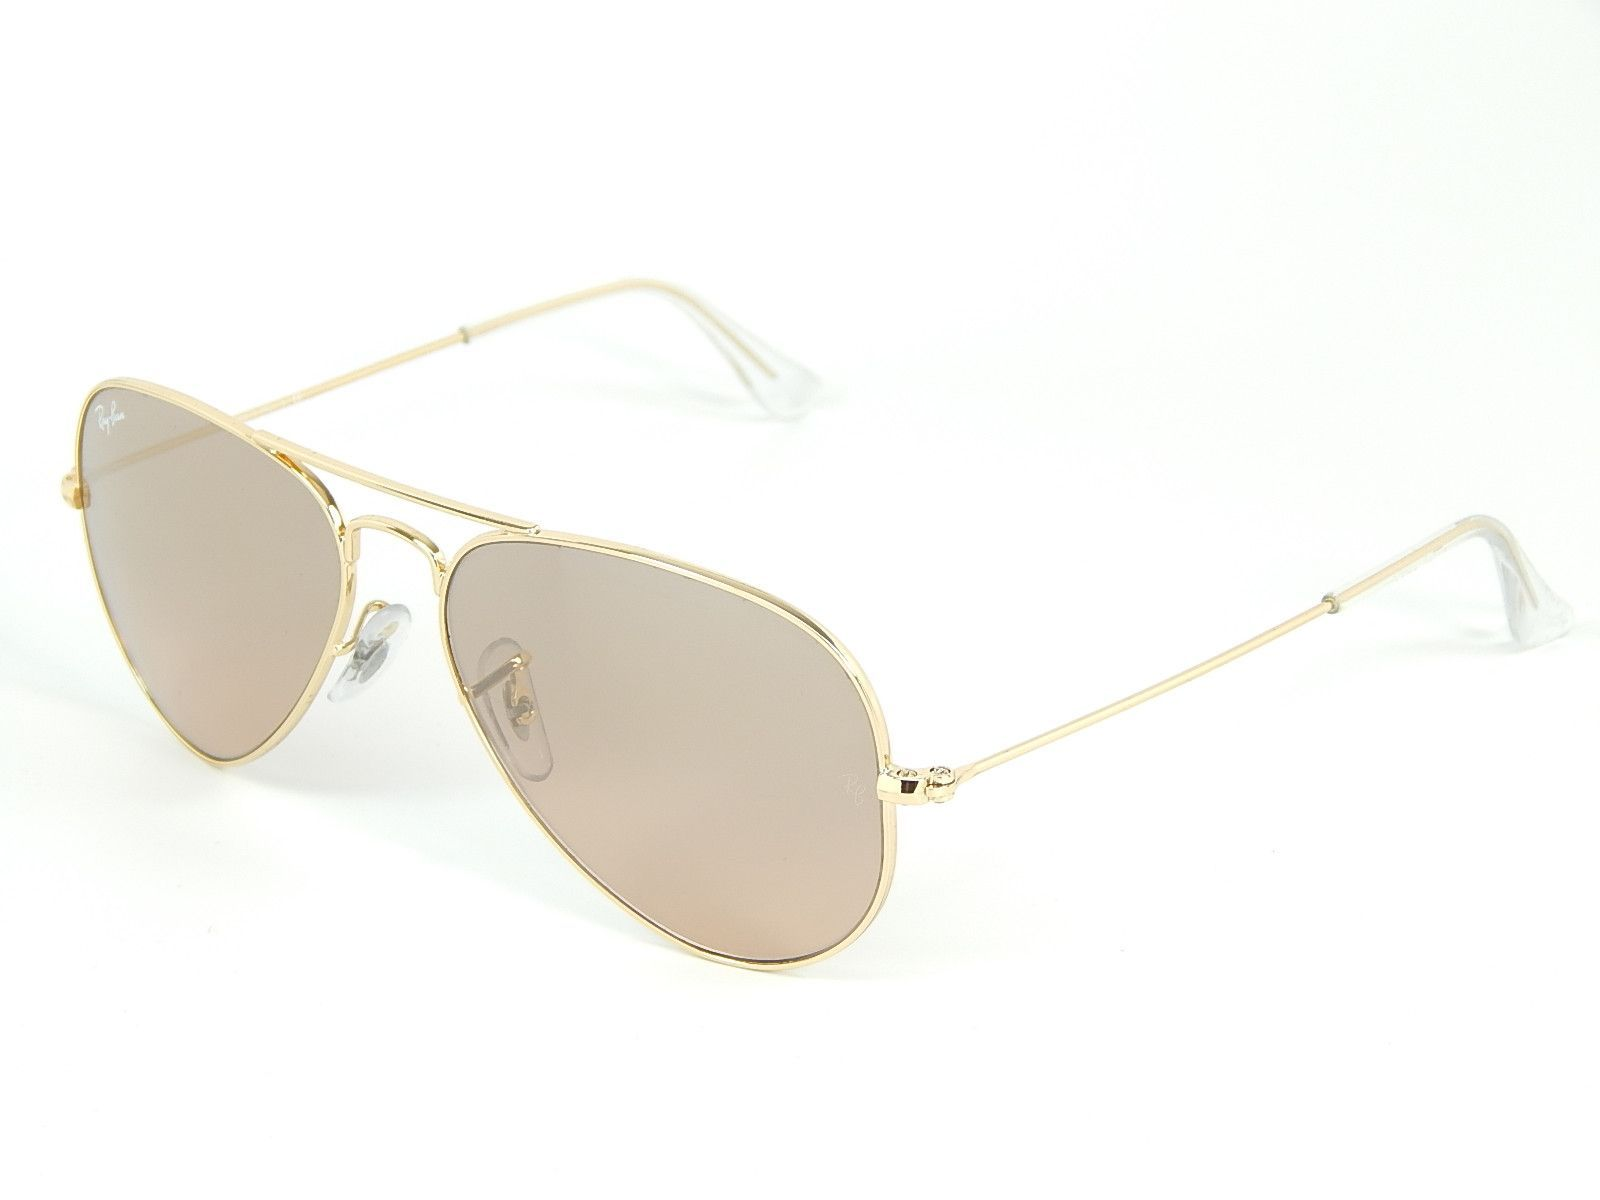 Ray Ban Aviator RB3025 001 3E Gold Silver Pink Mirror 58mm Sunglasses 96a3df695130